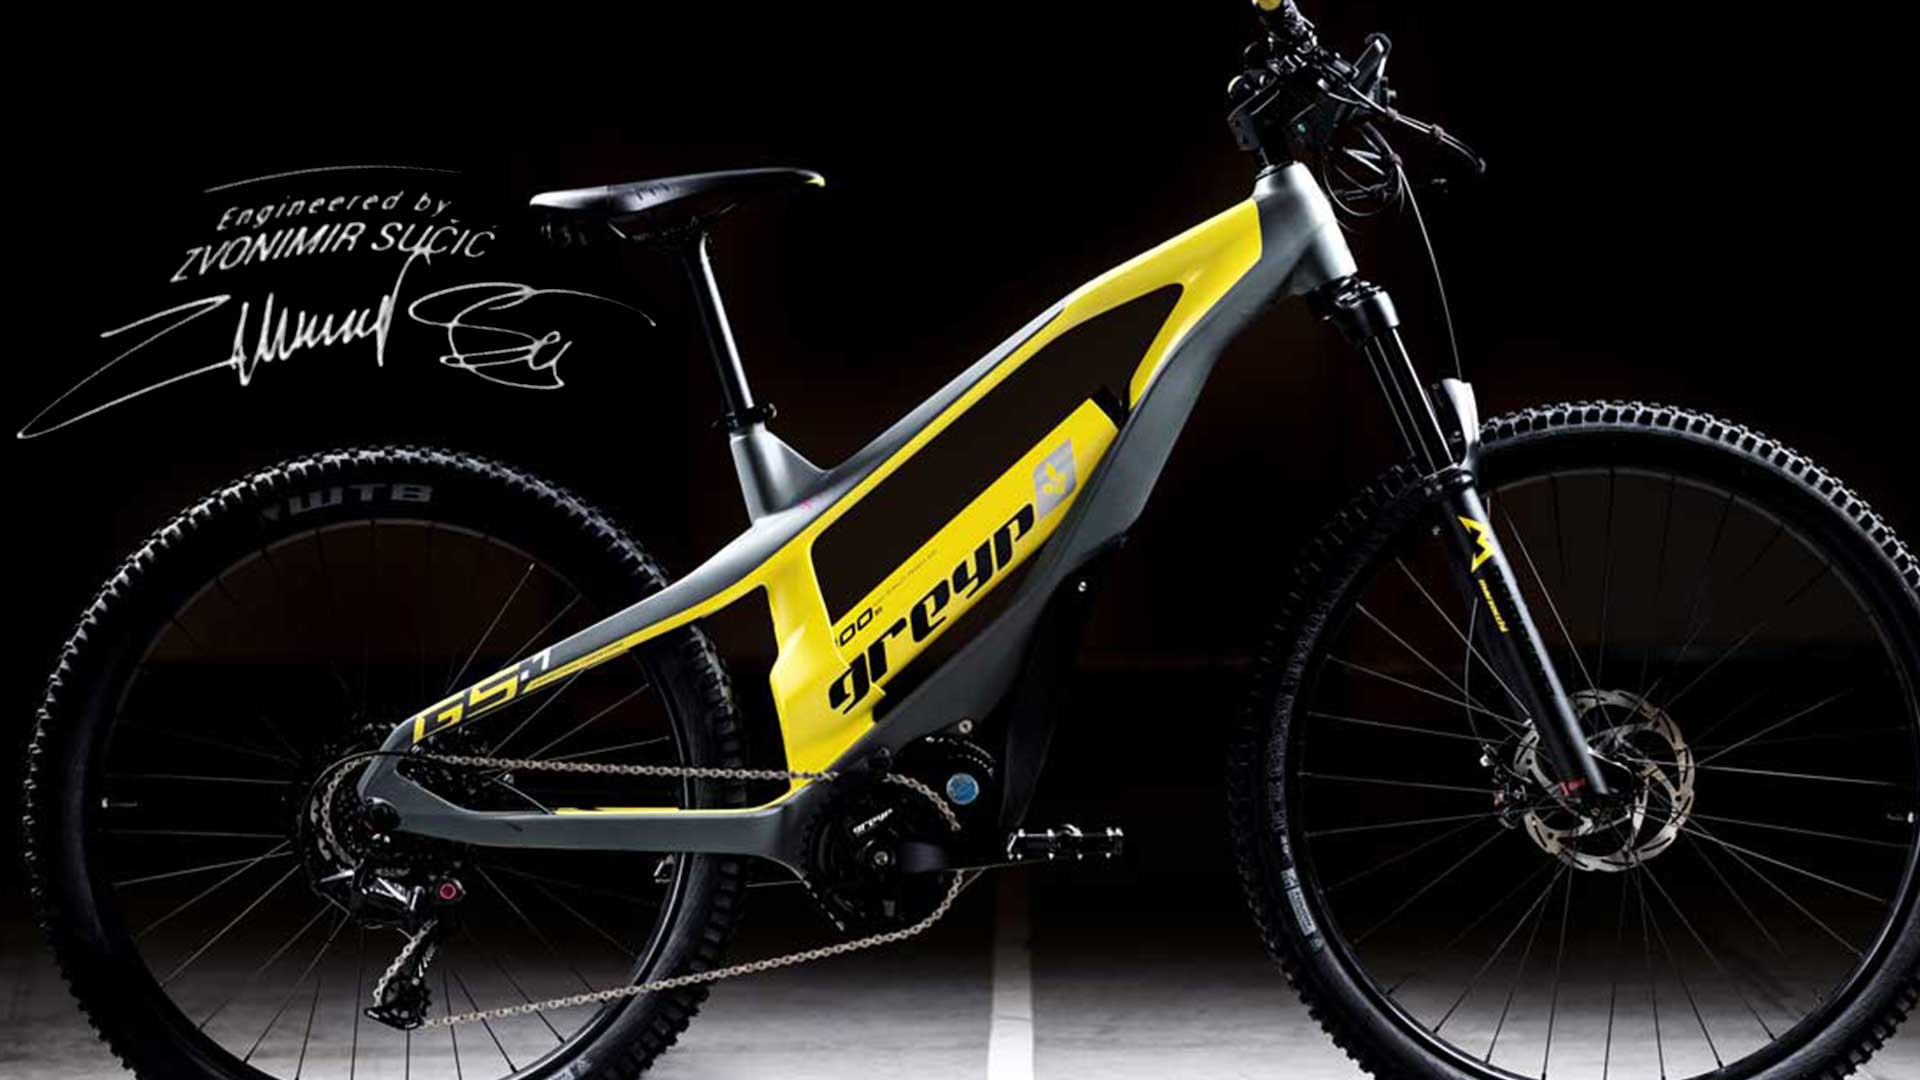 Greyp bikes introduces G5 HARDTAIL Ebike range on EUROBIKE